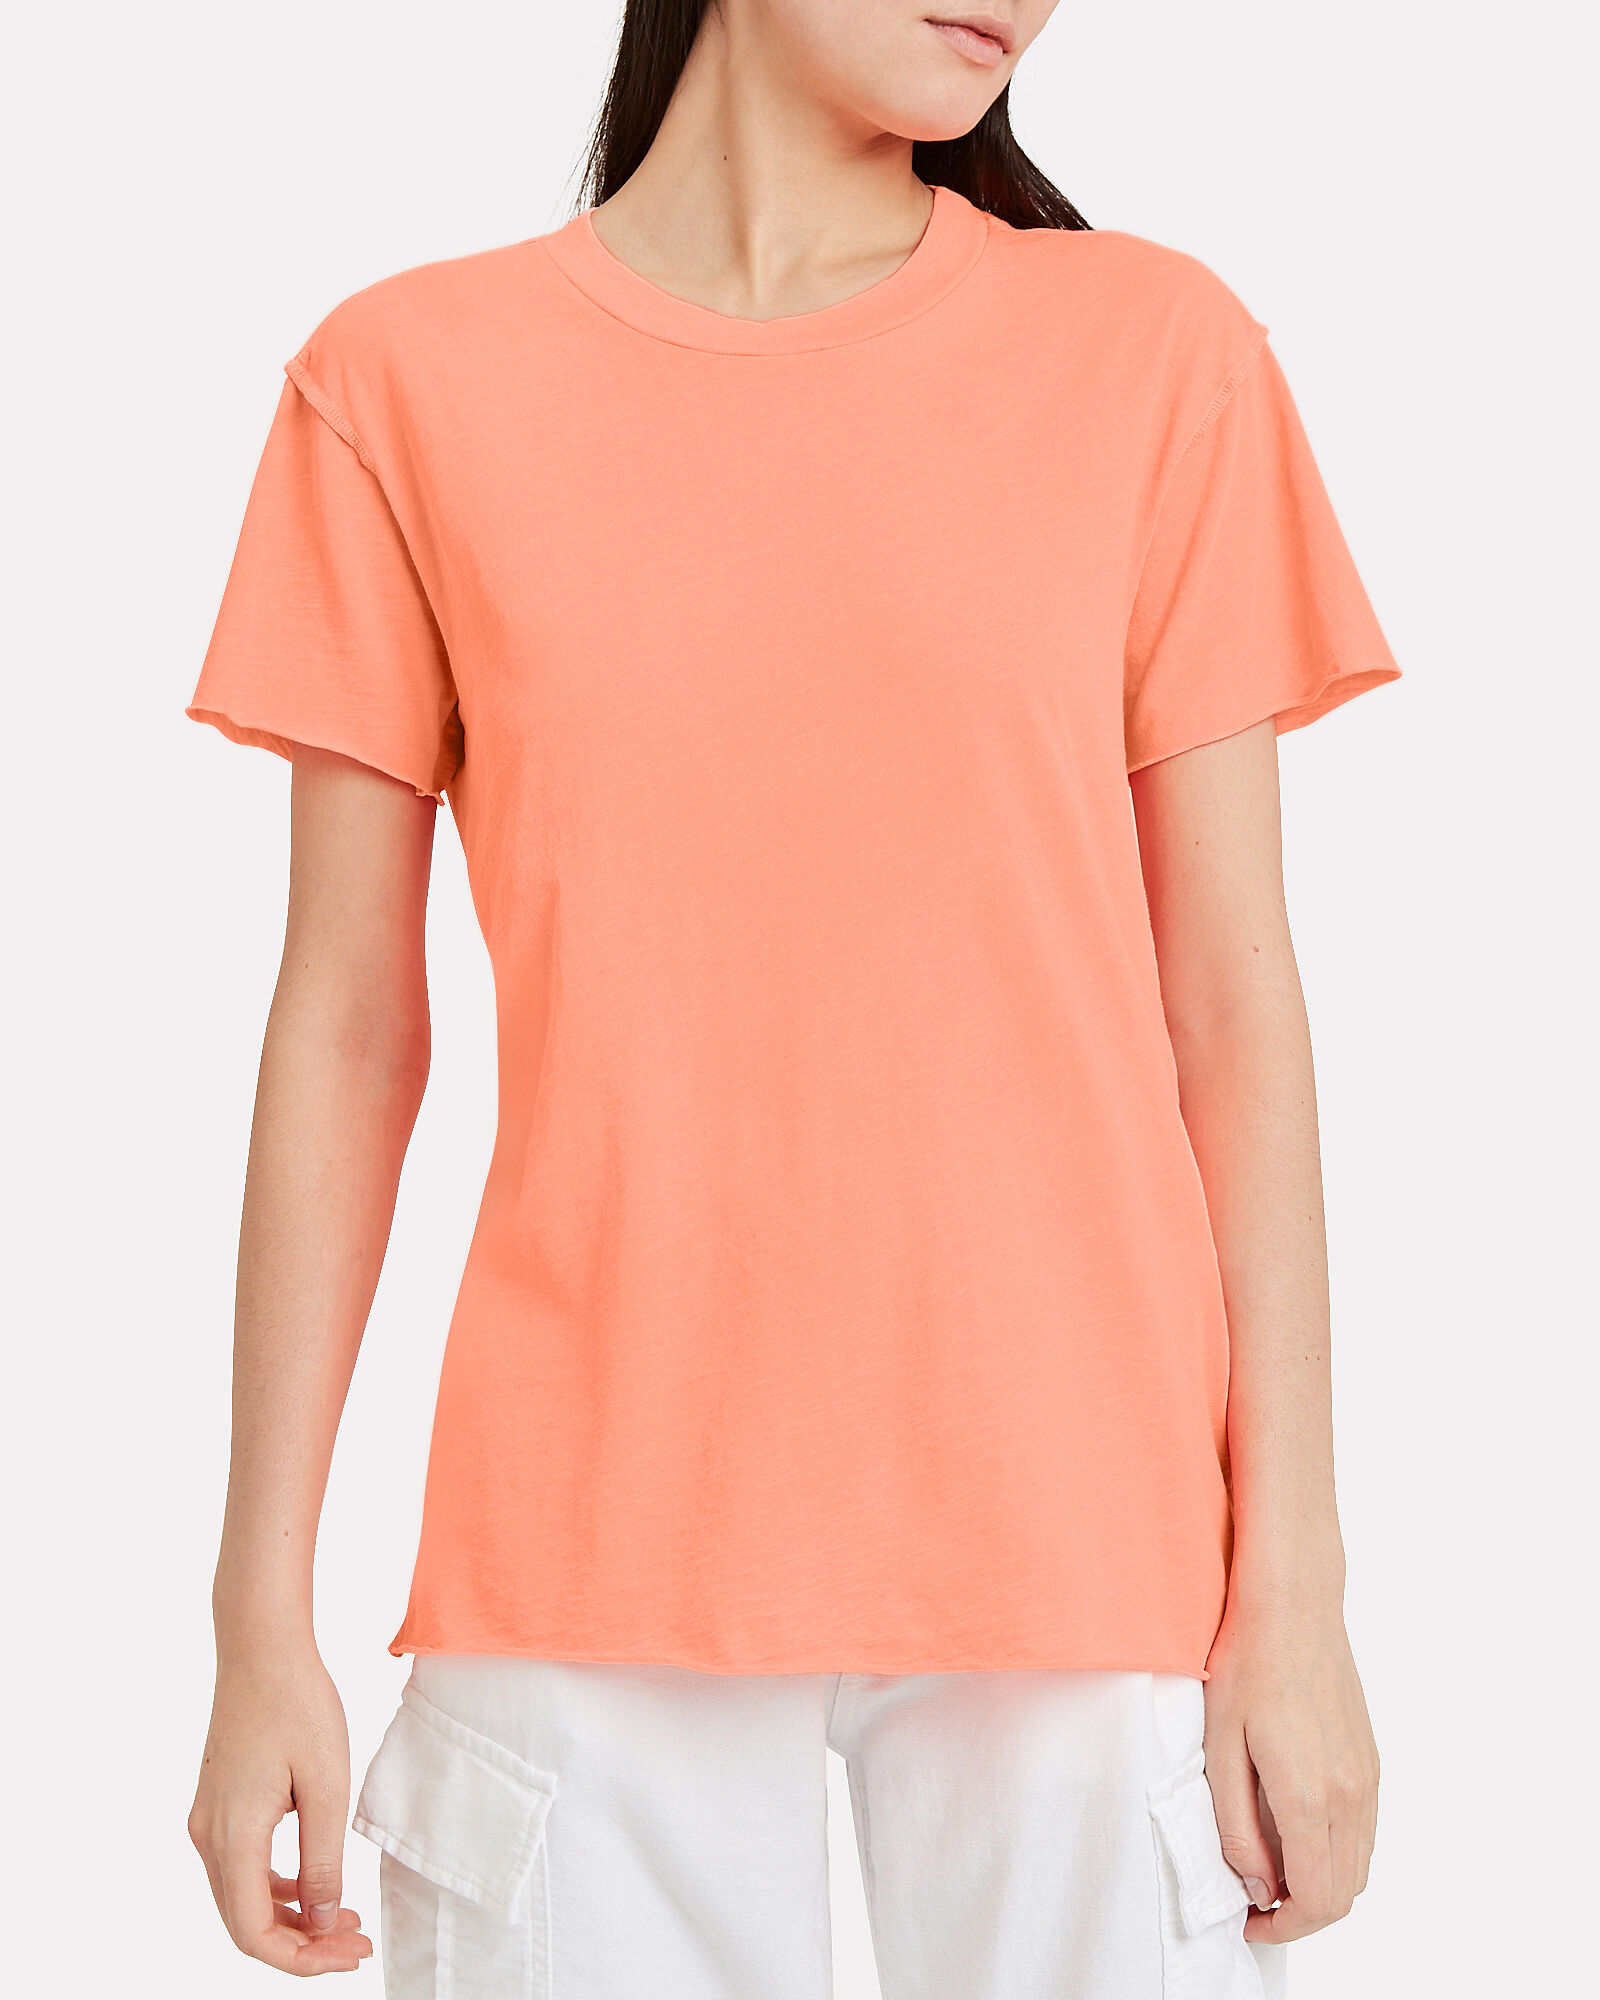 Moore Inside-Out Jersey Tee, NEON CORAL, hi-res